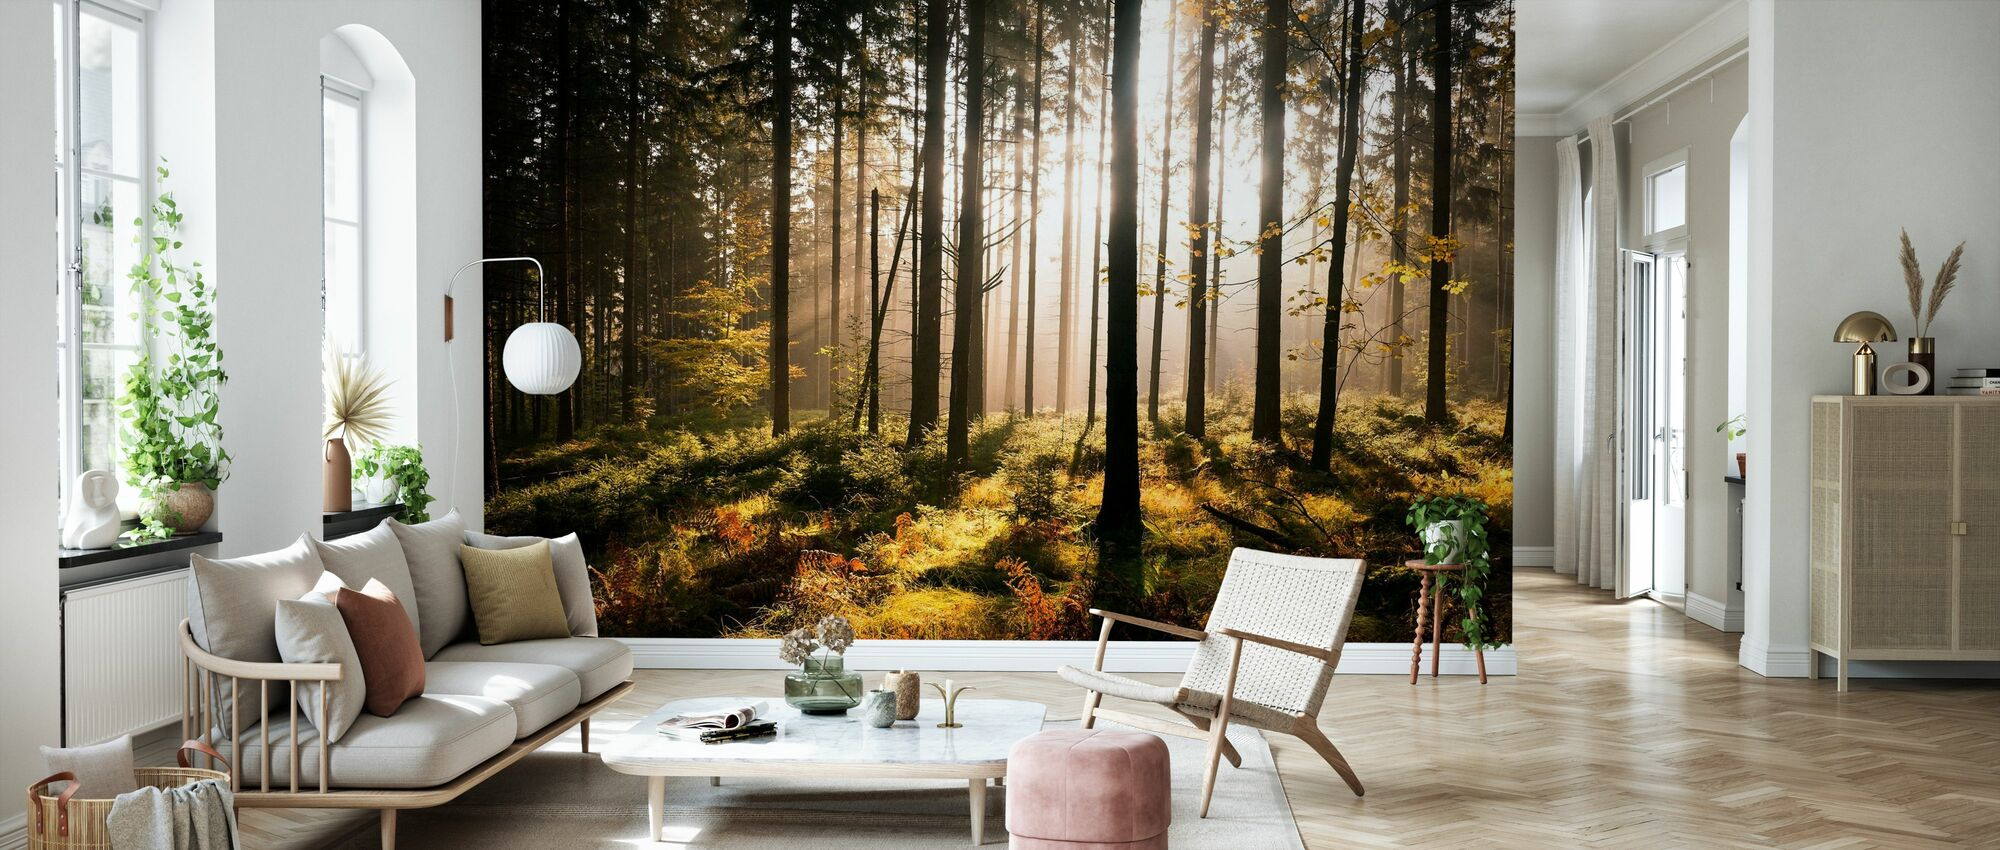 Fall Forest with Sunrays - Wallpaper - Living Room